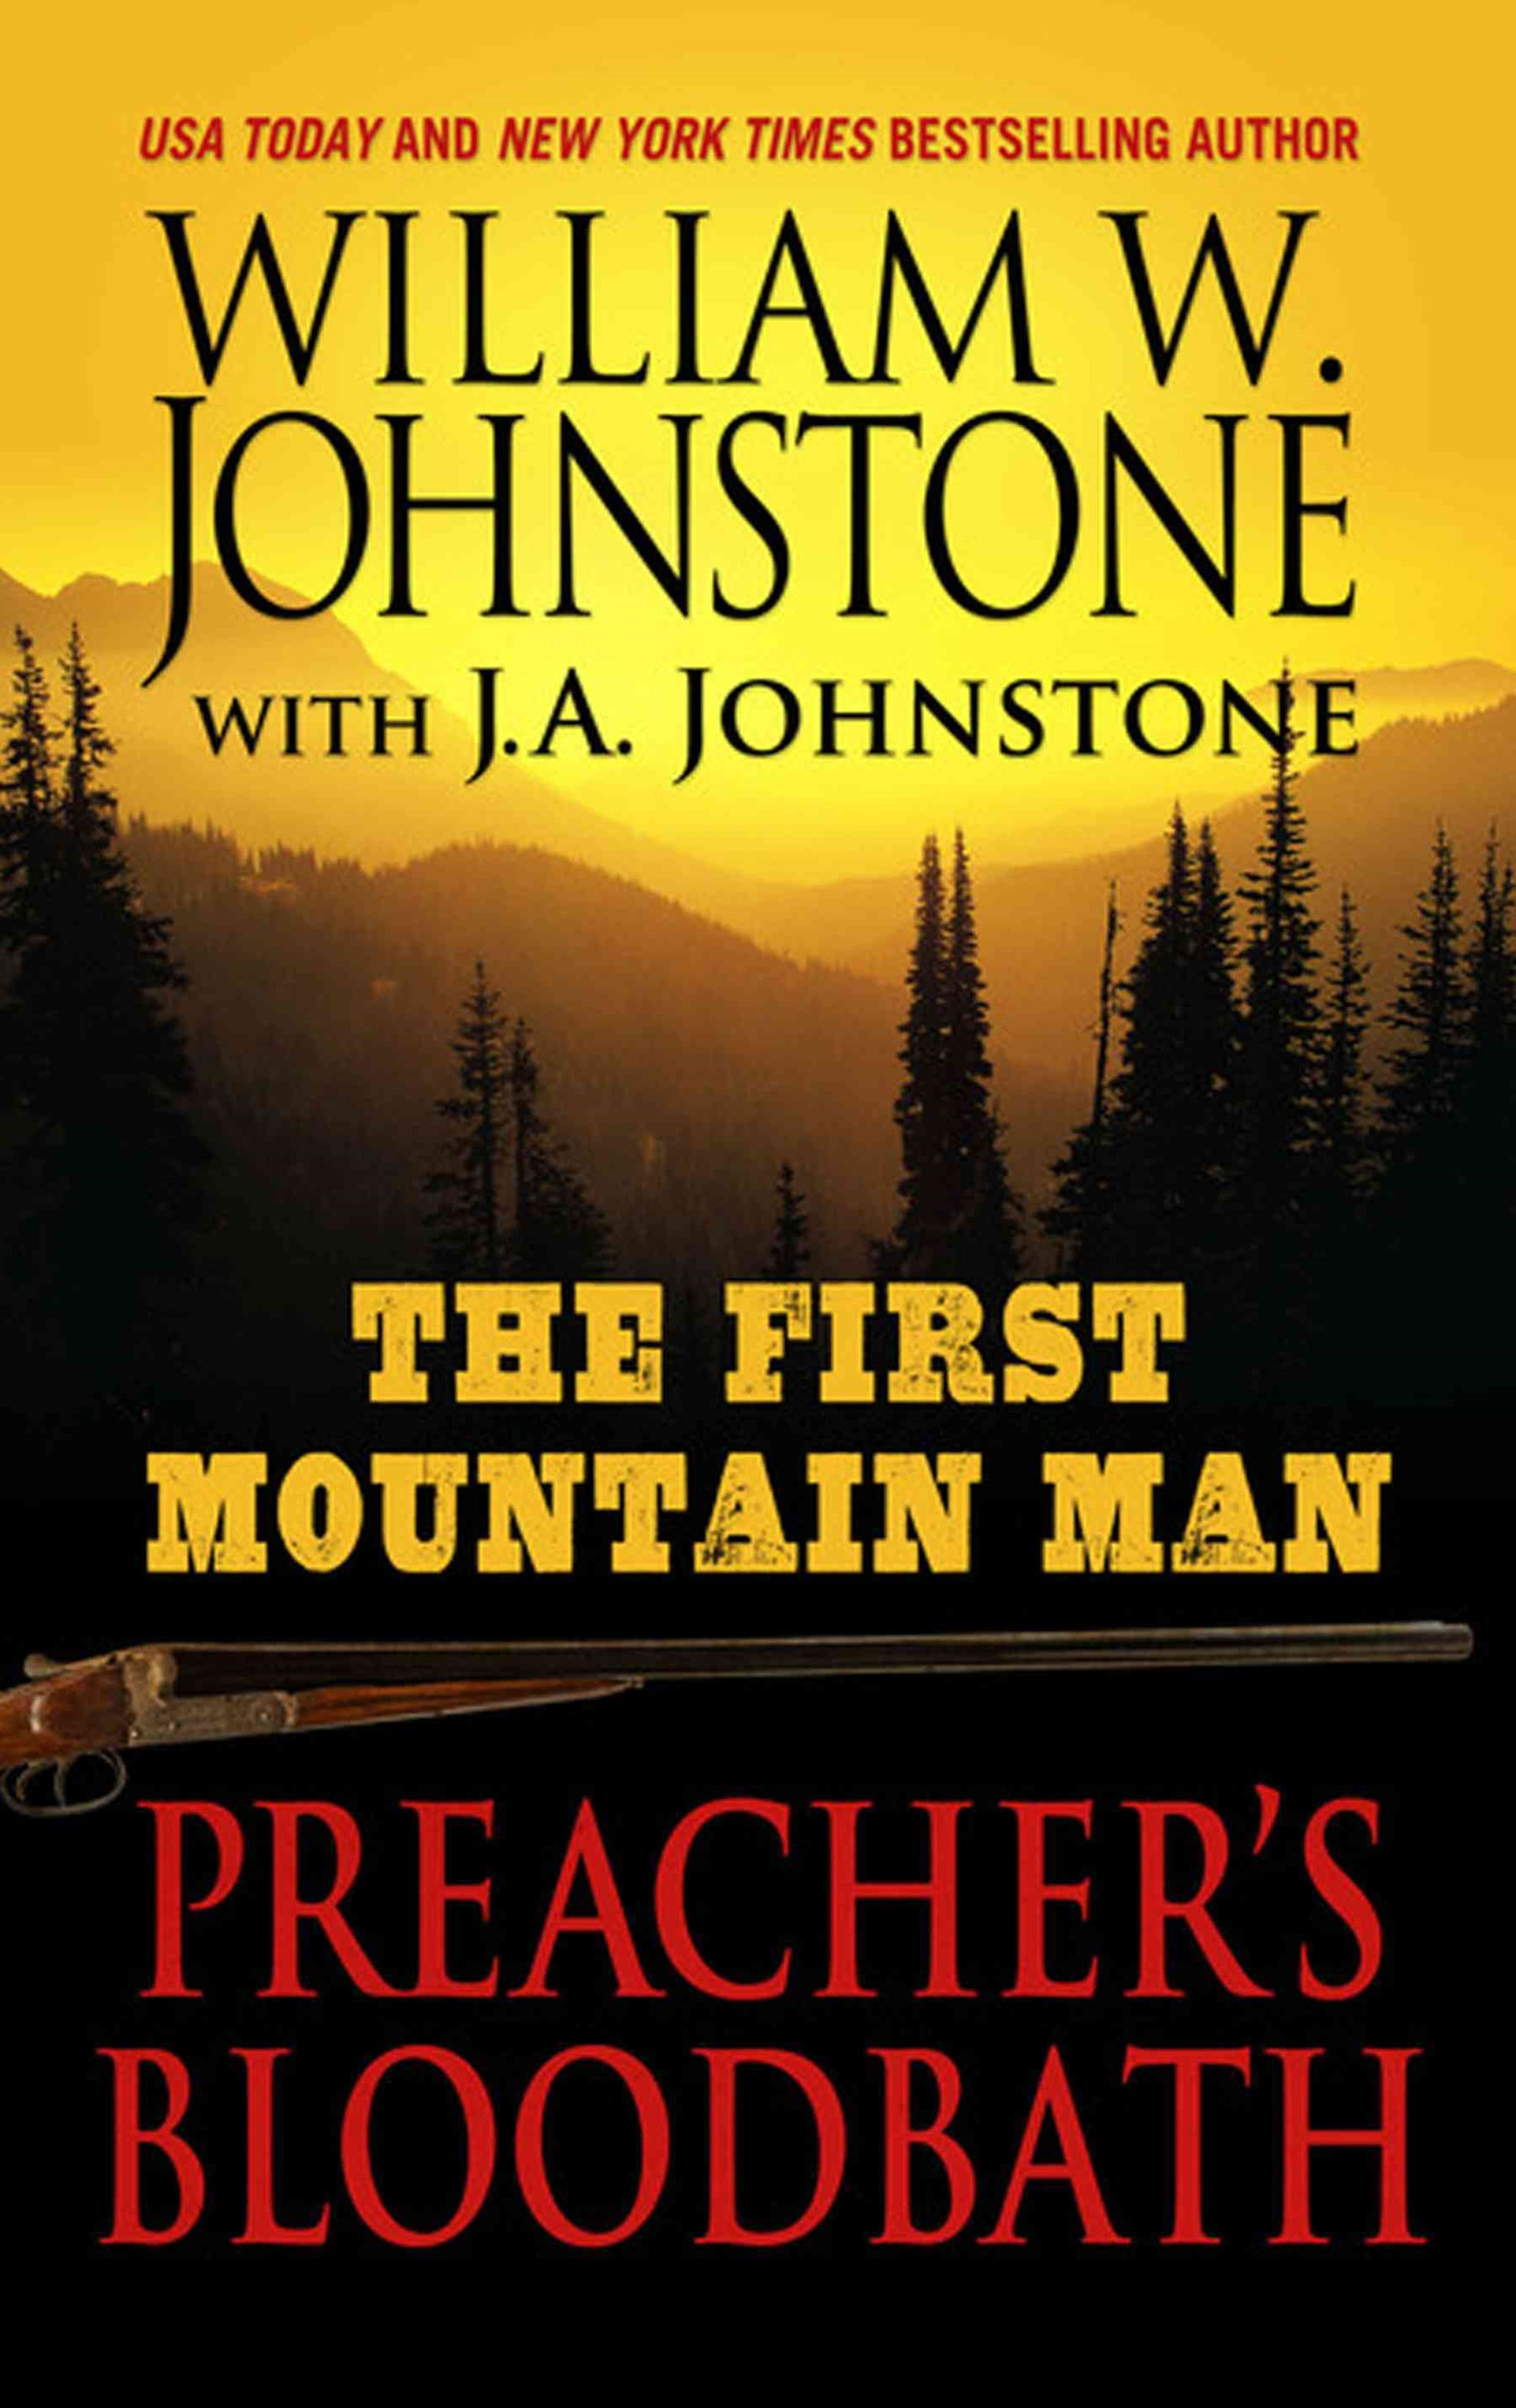 The First Mountain Man Preacher's Bloodbath